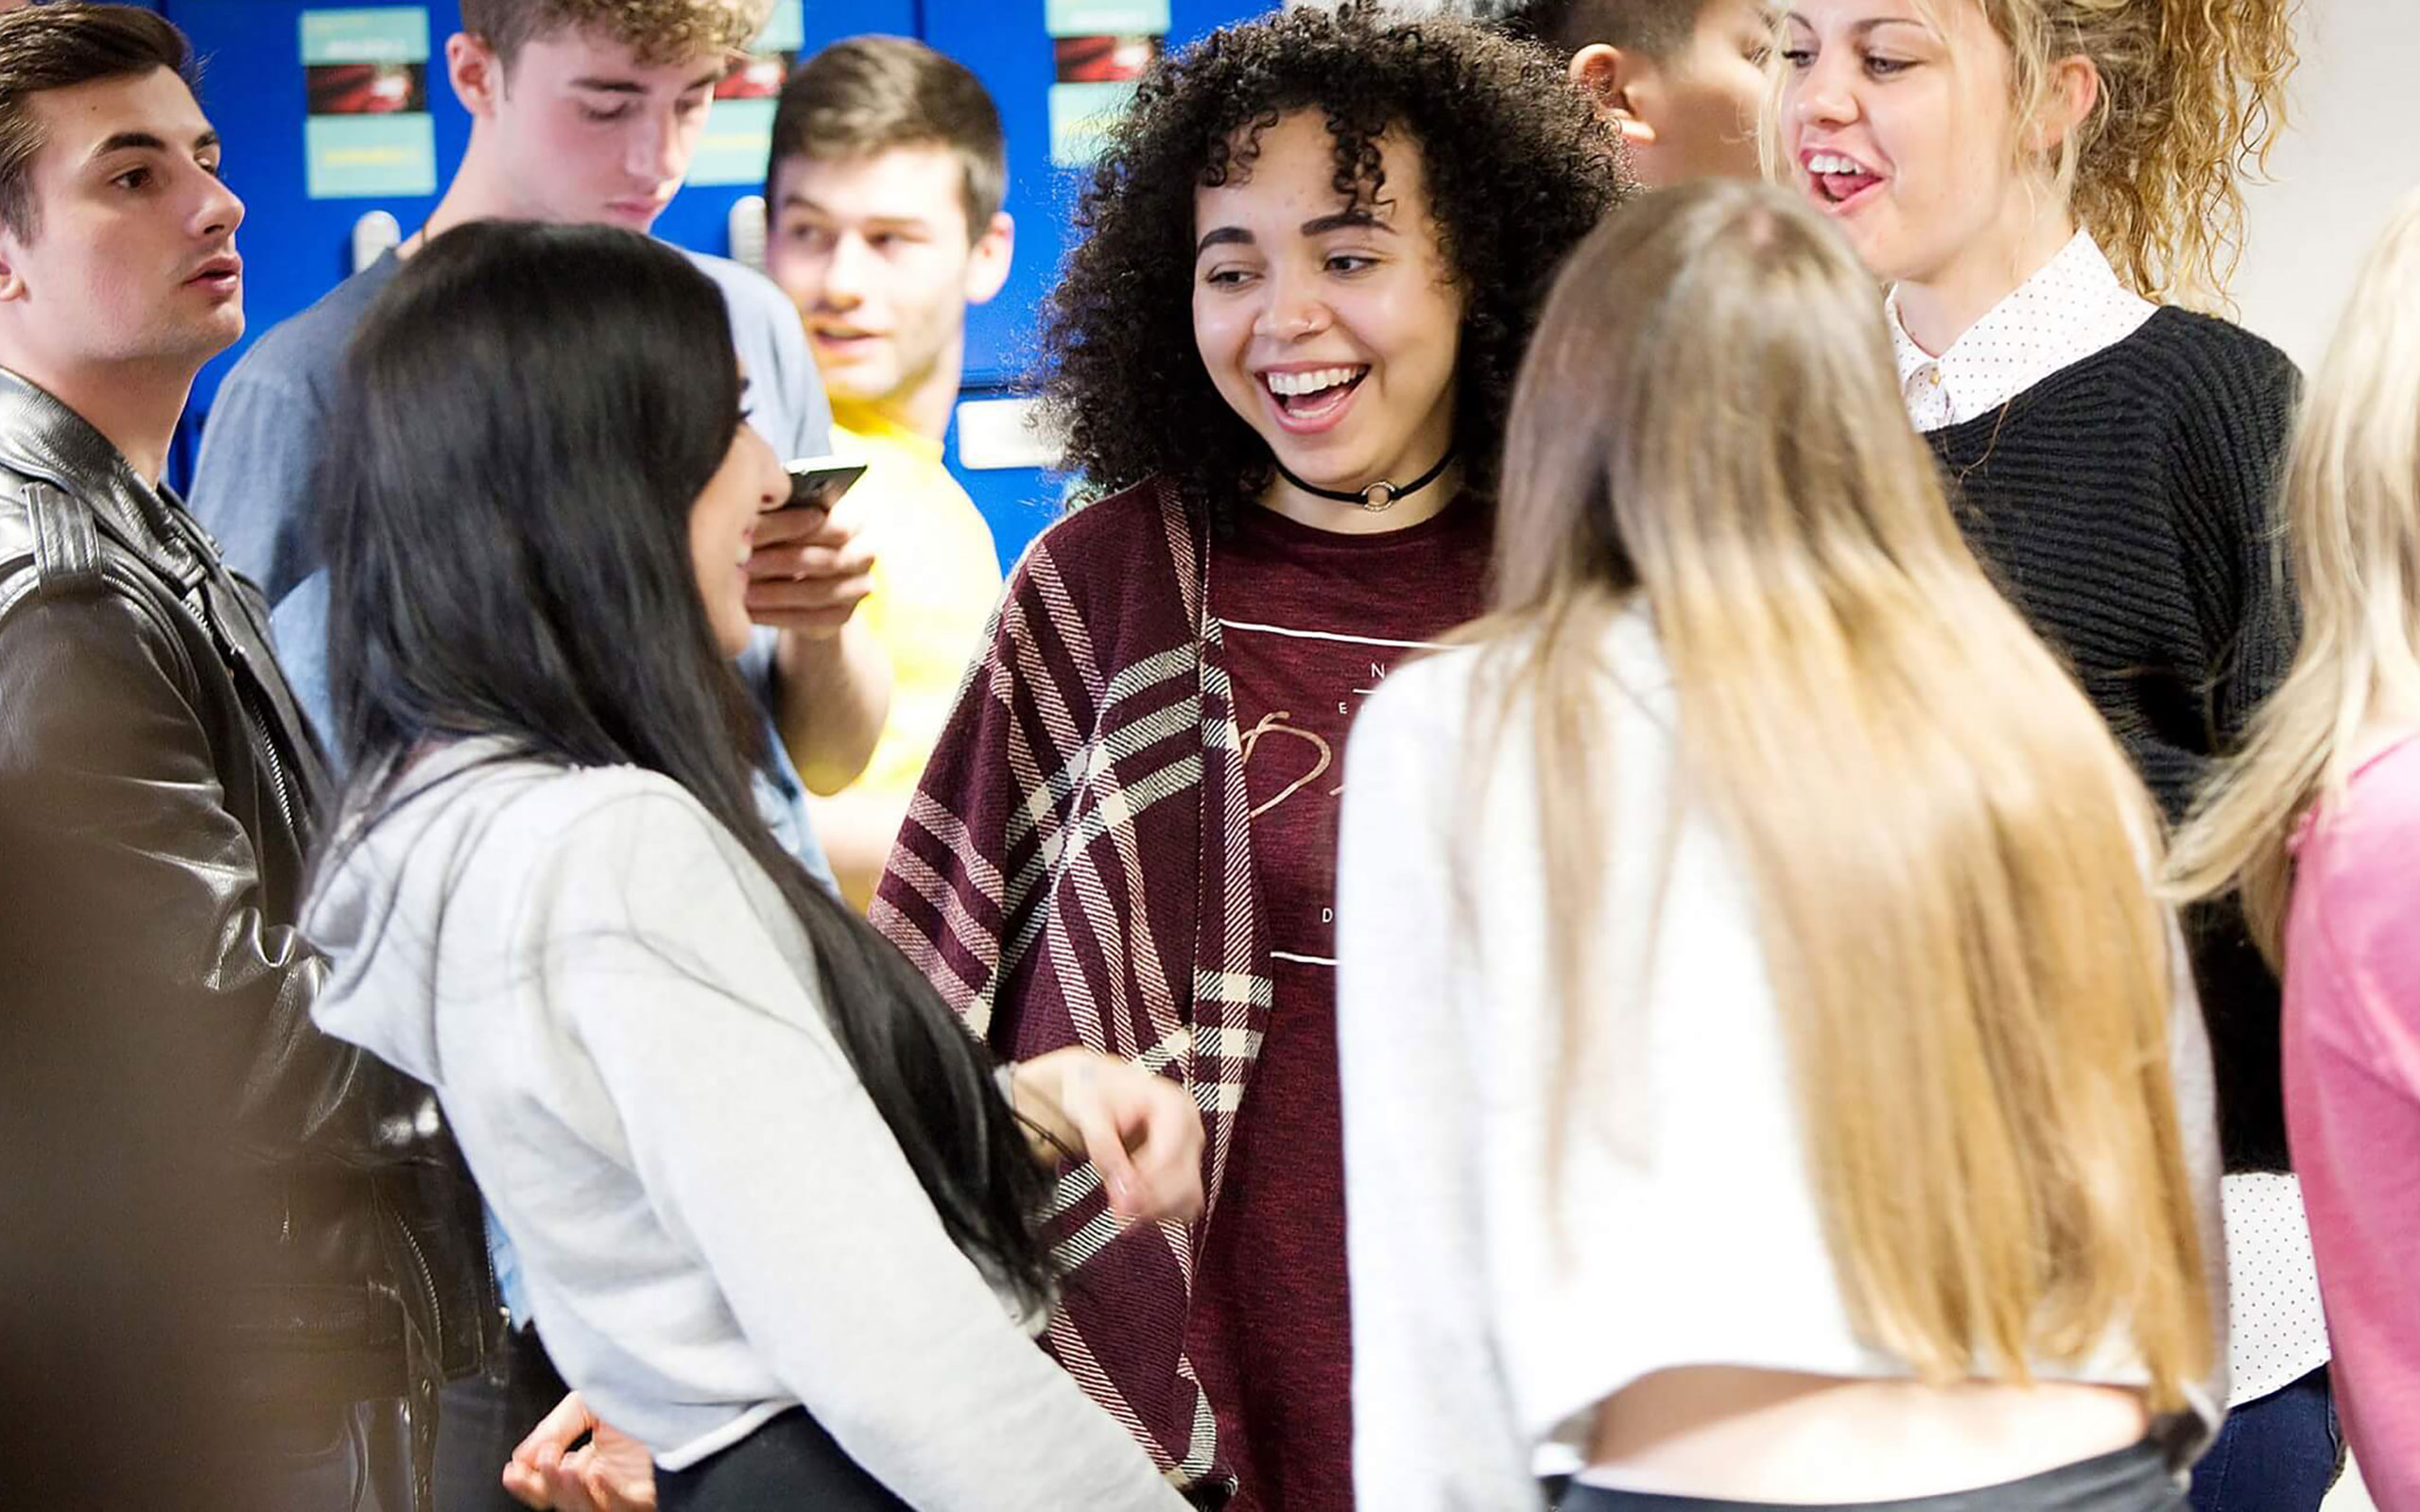 Students socialising in a group